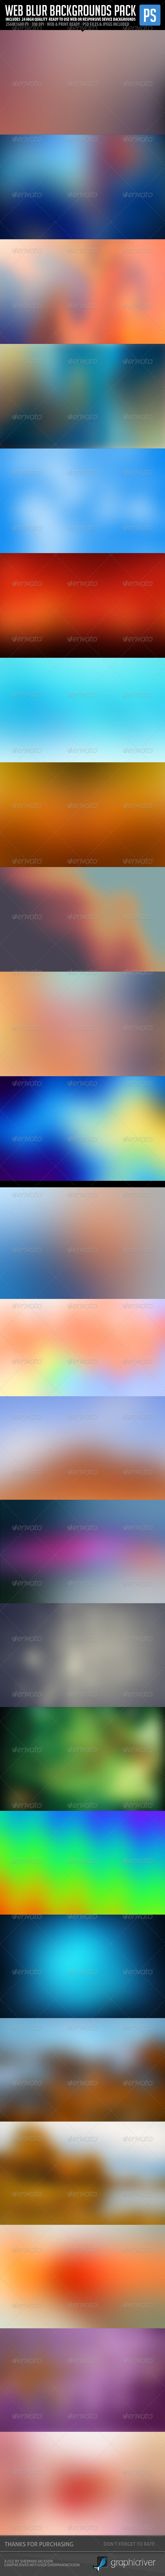 GraphicRiver Web Blur Backgrounds Bundle Pack 6449855